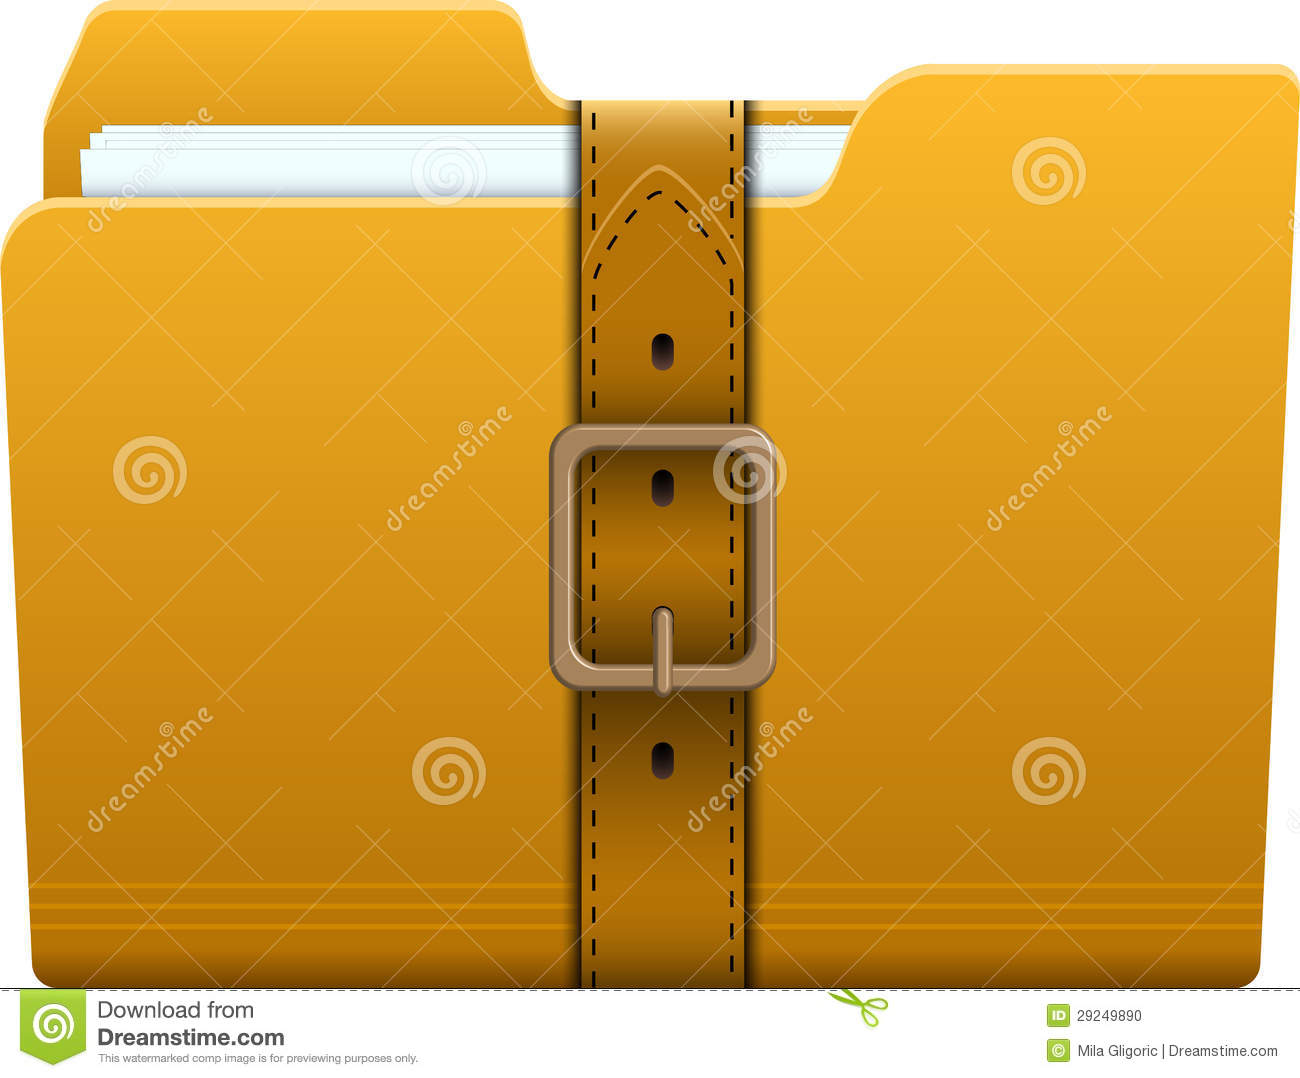 Locked Folder Stock Image | CartoonDealer.com #25300405